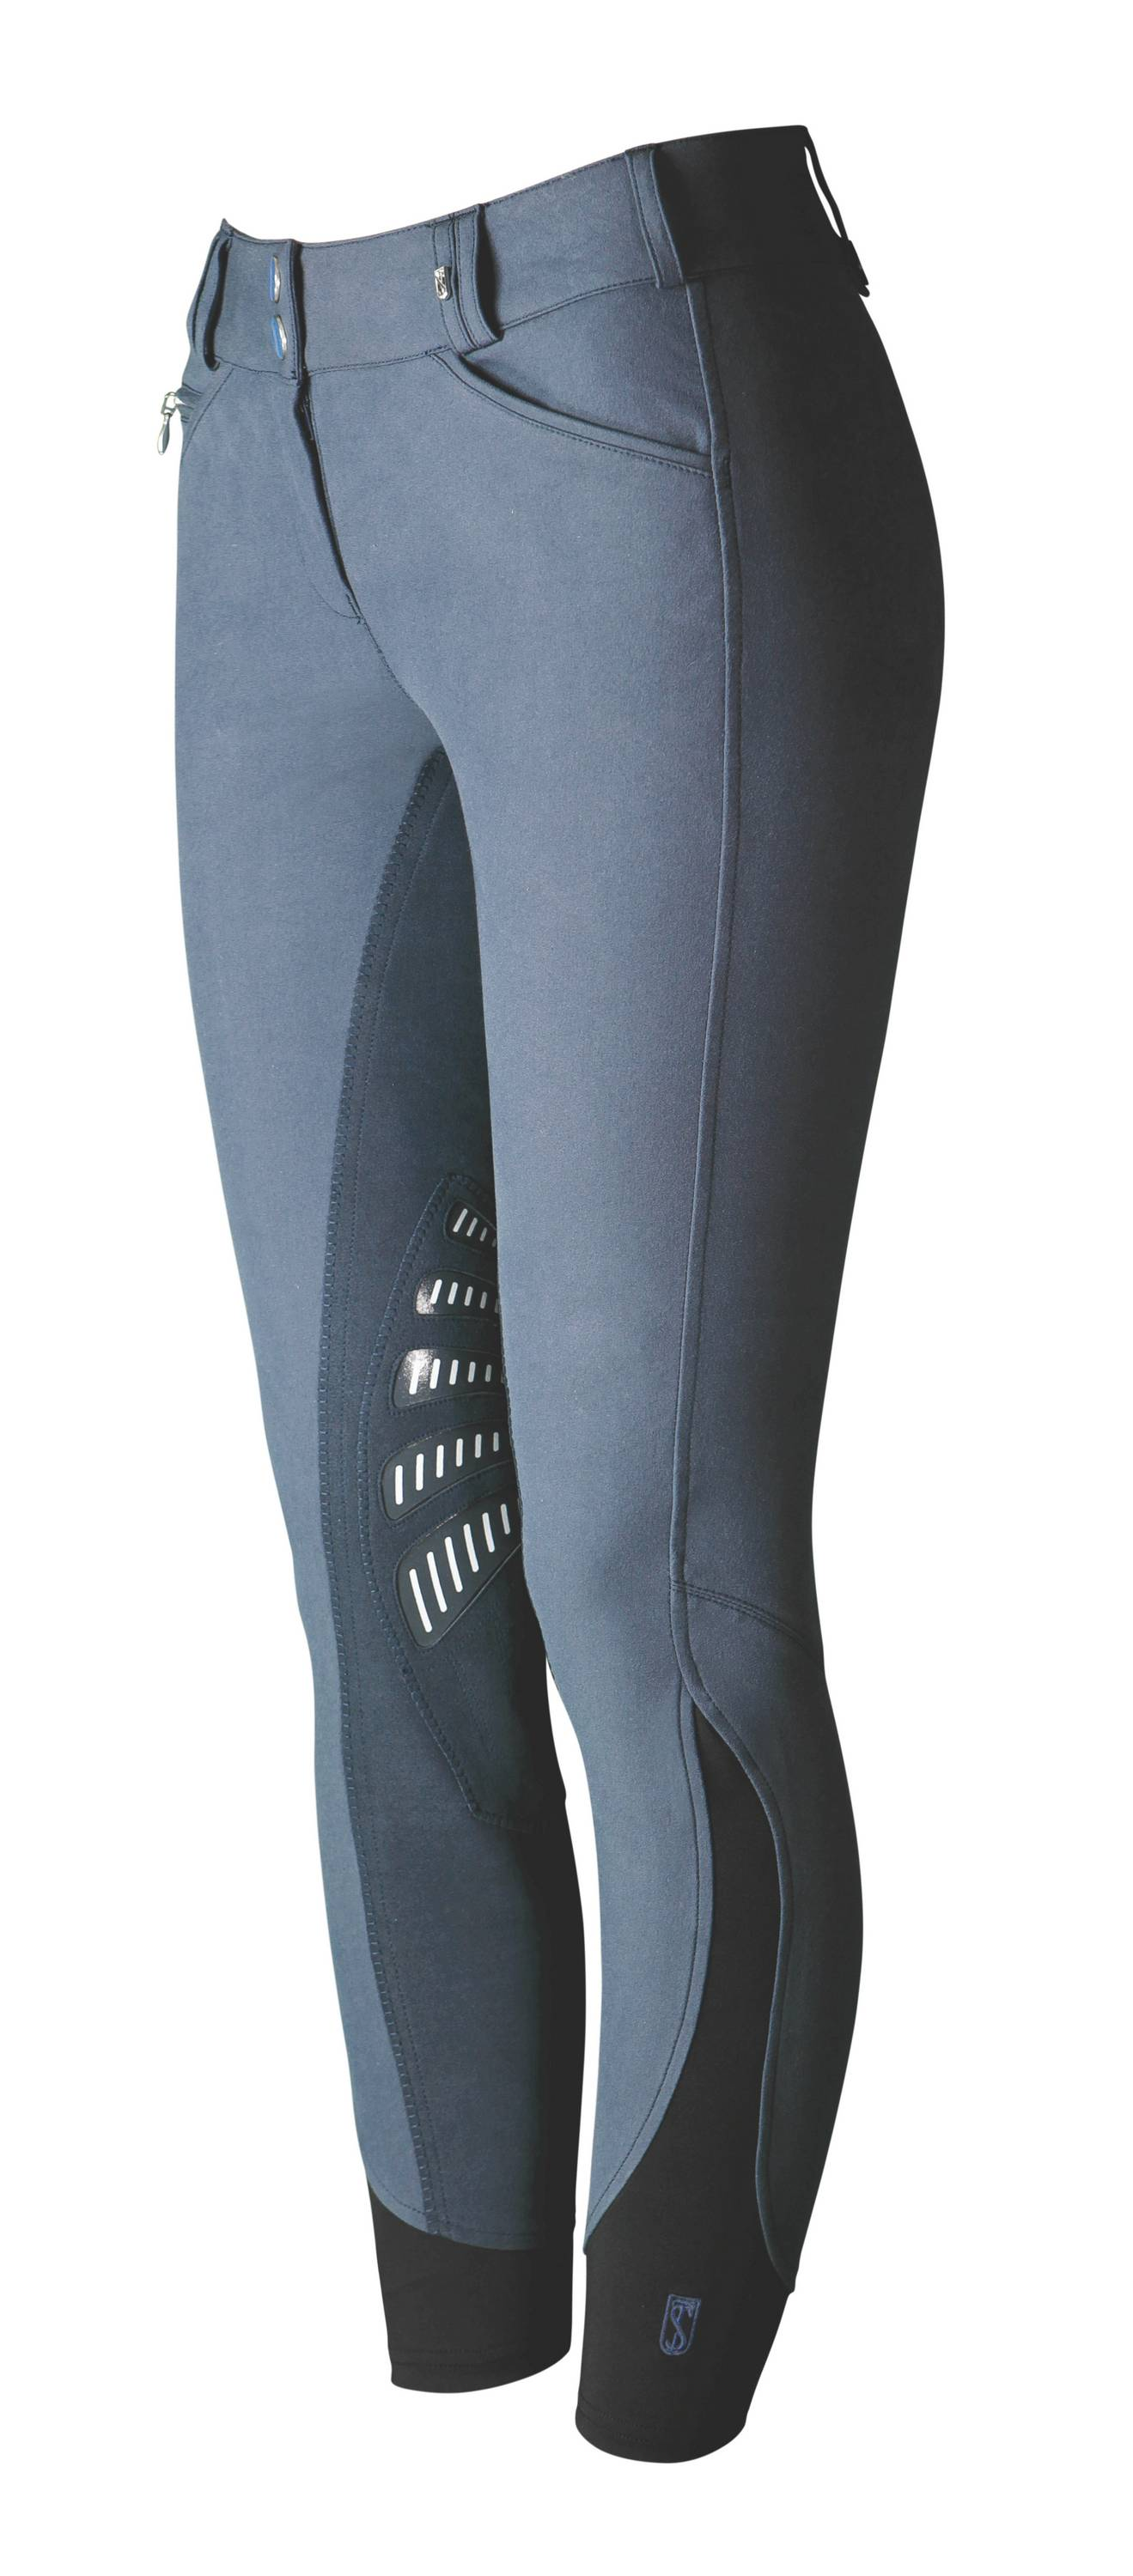 Tredstep Symphony Azzura Pro Breeches - Ladies, Full Seat